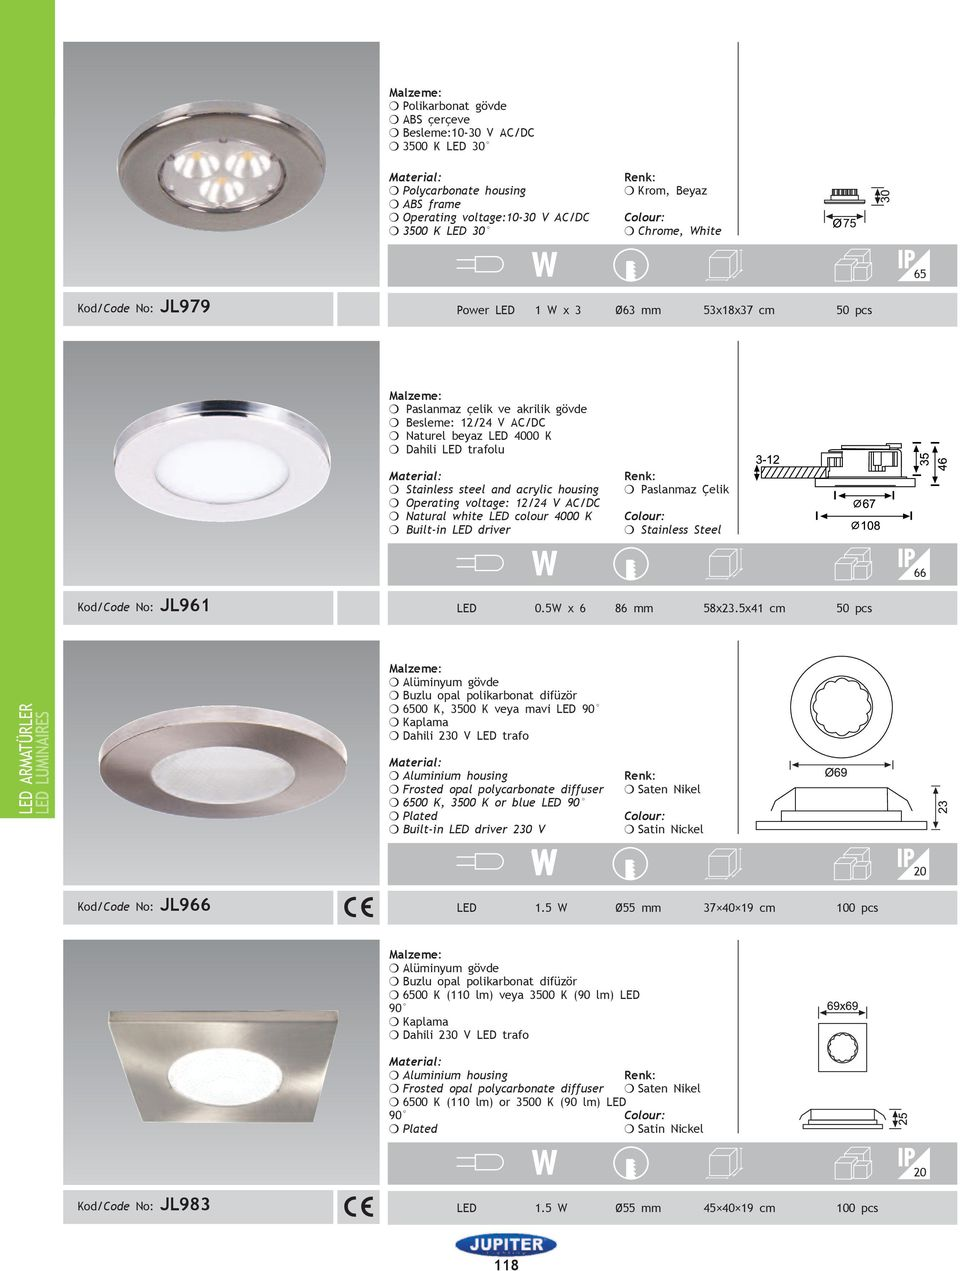 voltage: 12/24 V AC/DC m Natural white LED colour 4000 K 66 Kod/Code No: JL961 LED 0.5W x 6 86 mm 58x23.